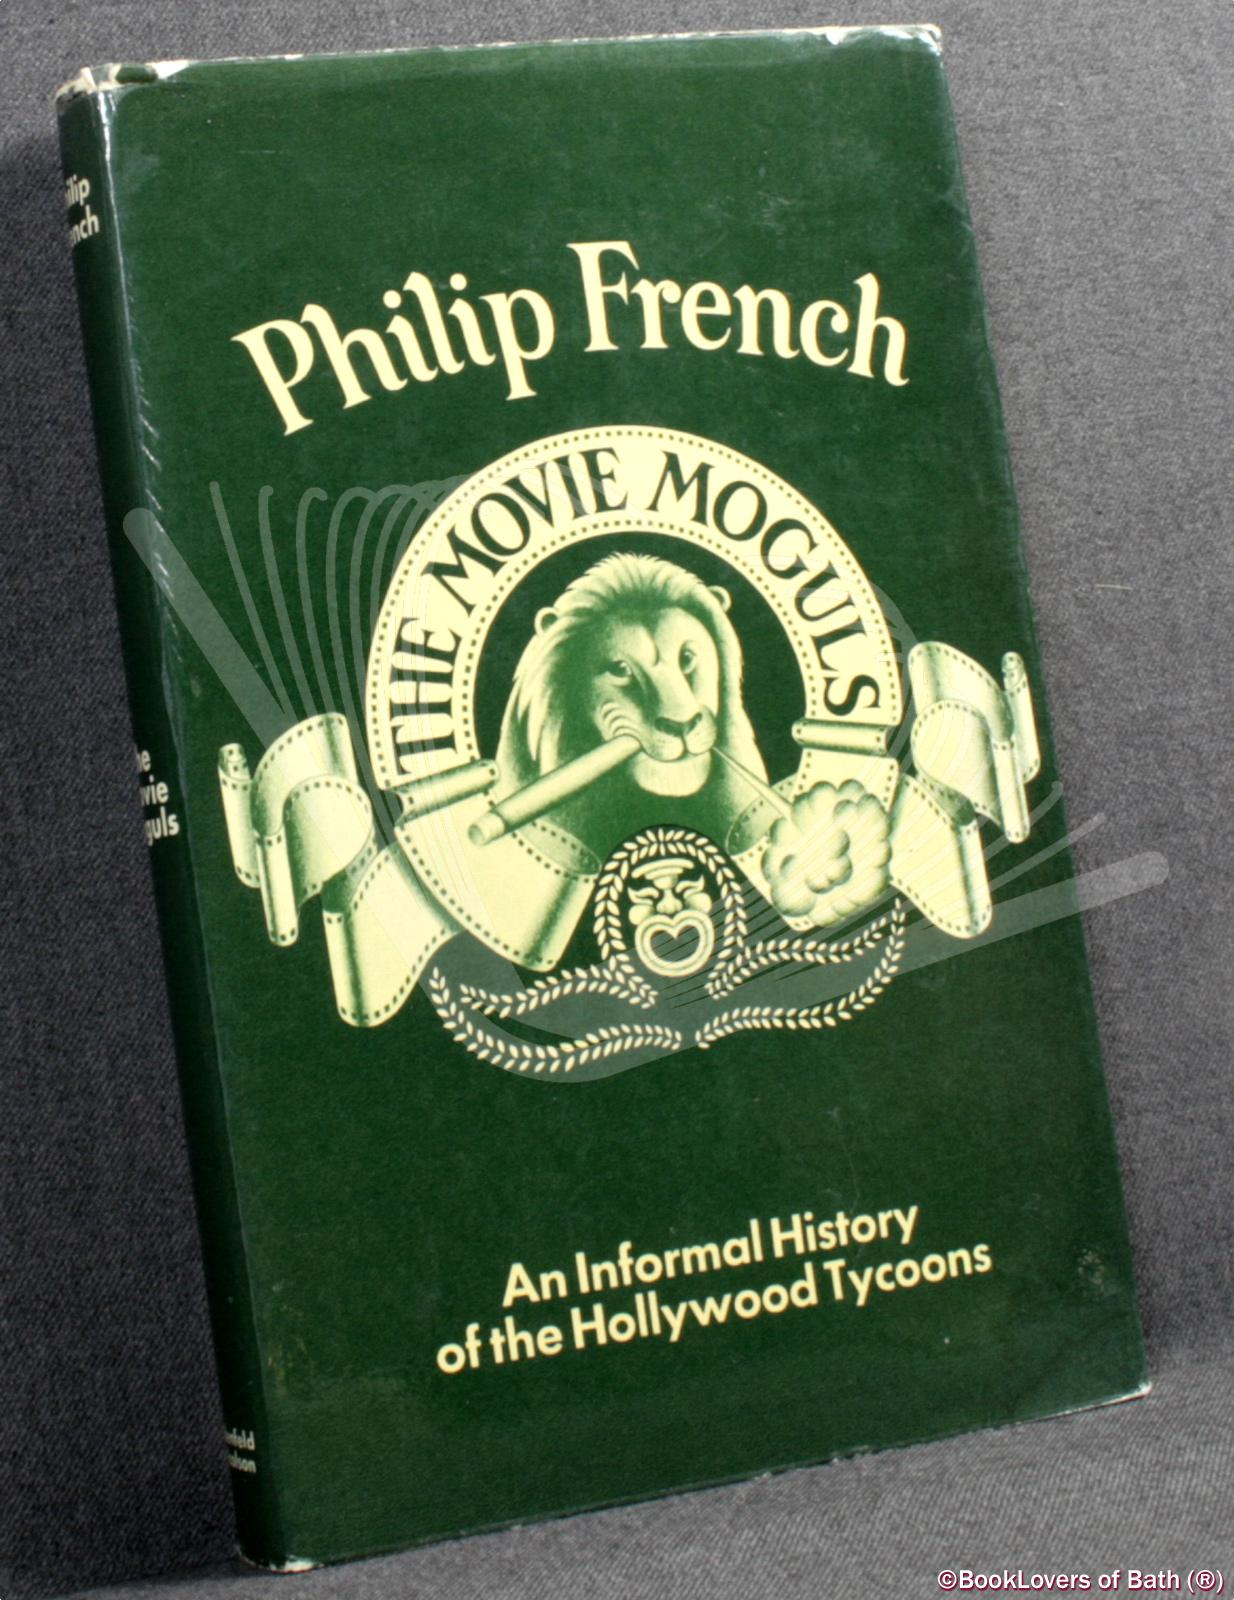 The Movie Moguls: An Informal History of the Hollywood Tycoons - Philip French